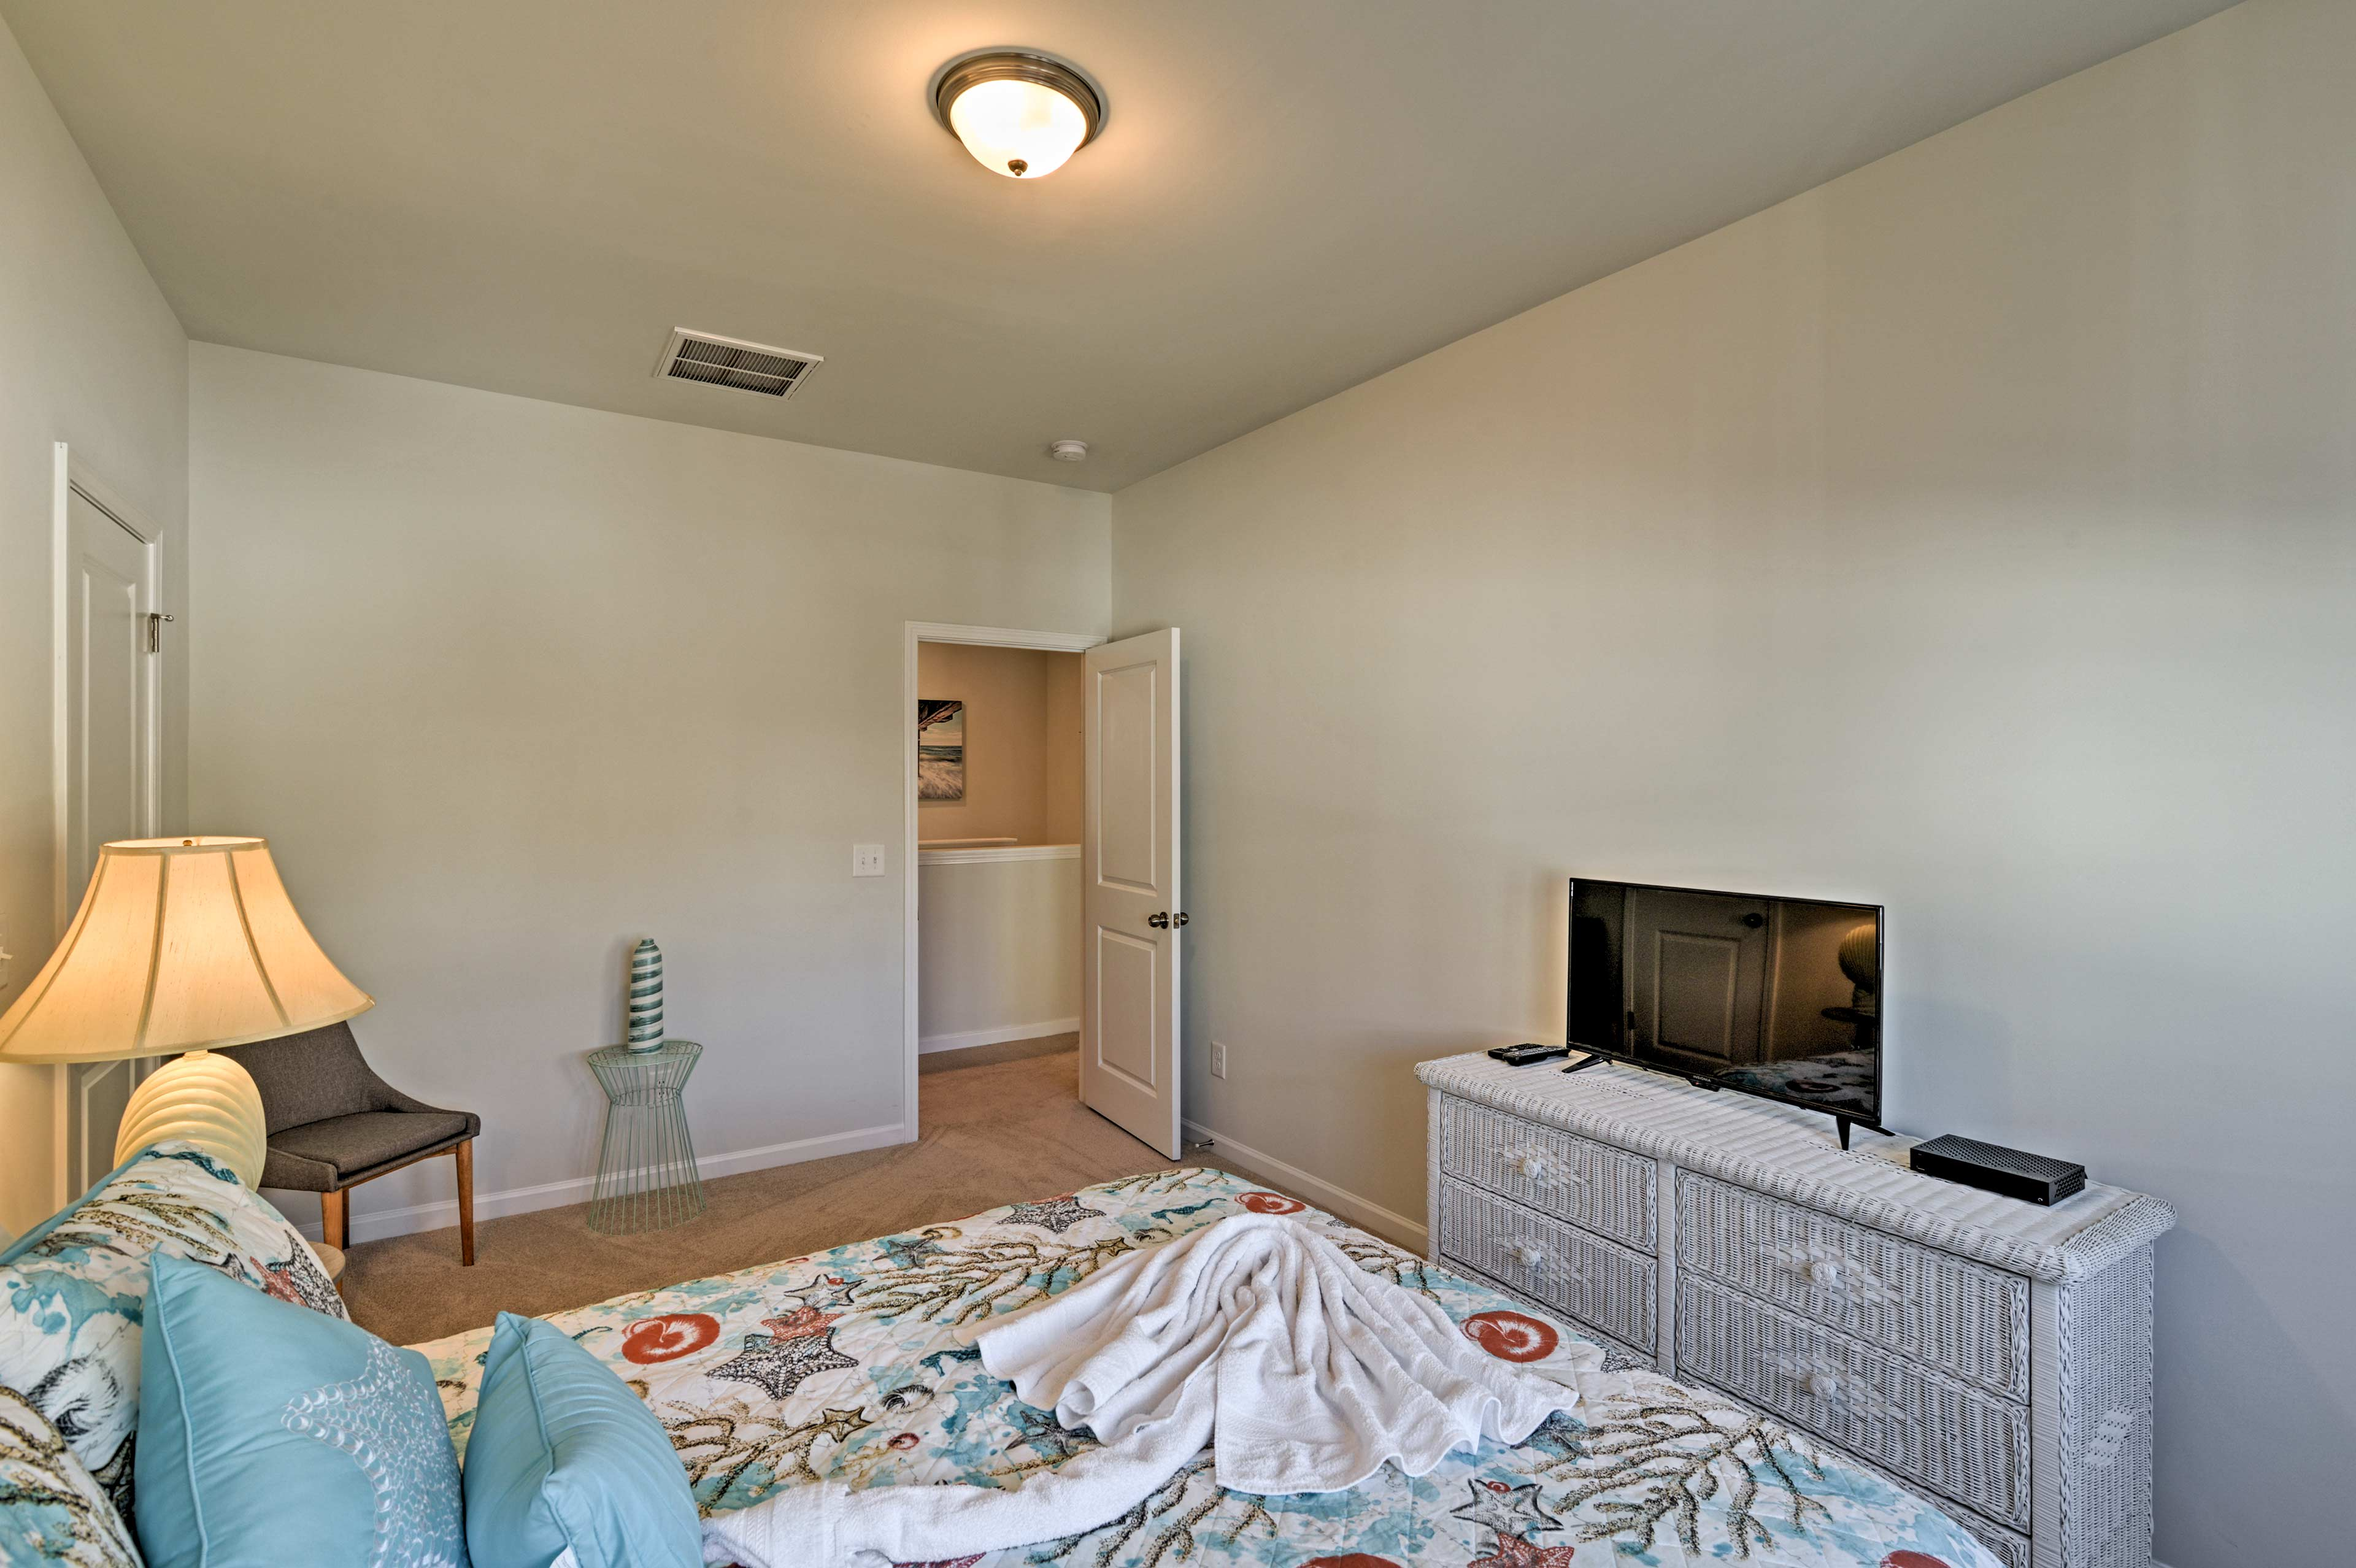 The room also features a 32-inch flat-screen cable TV.